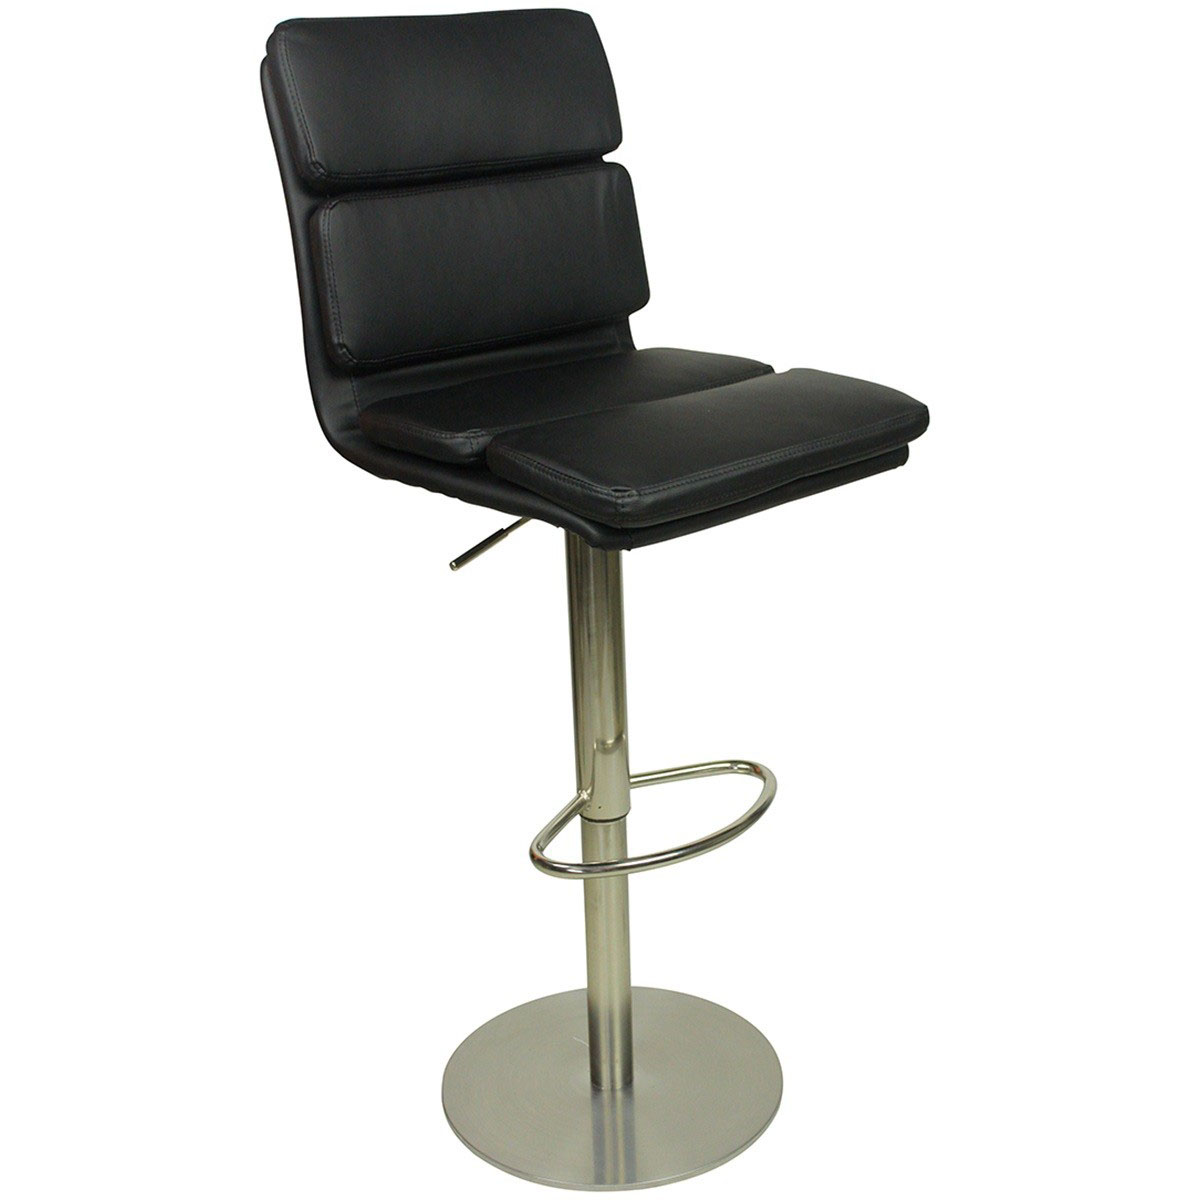 Deluxe Moderno Bar Stool - Black Product Image